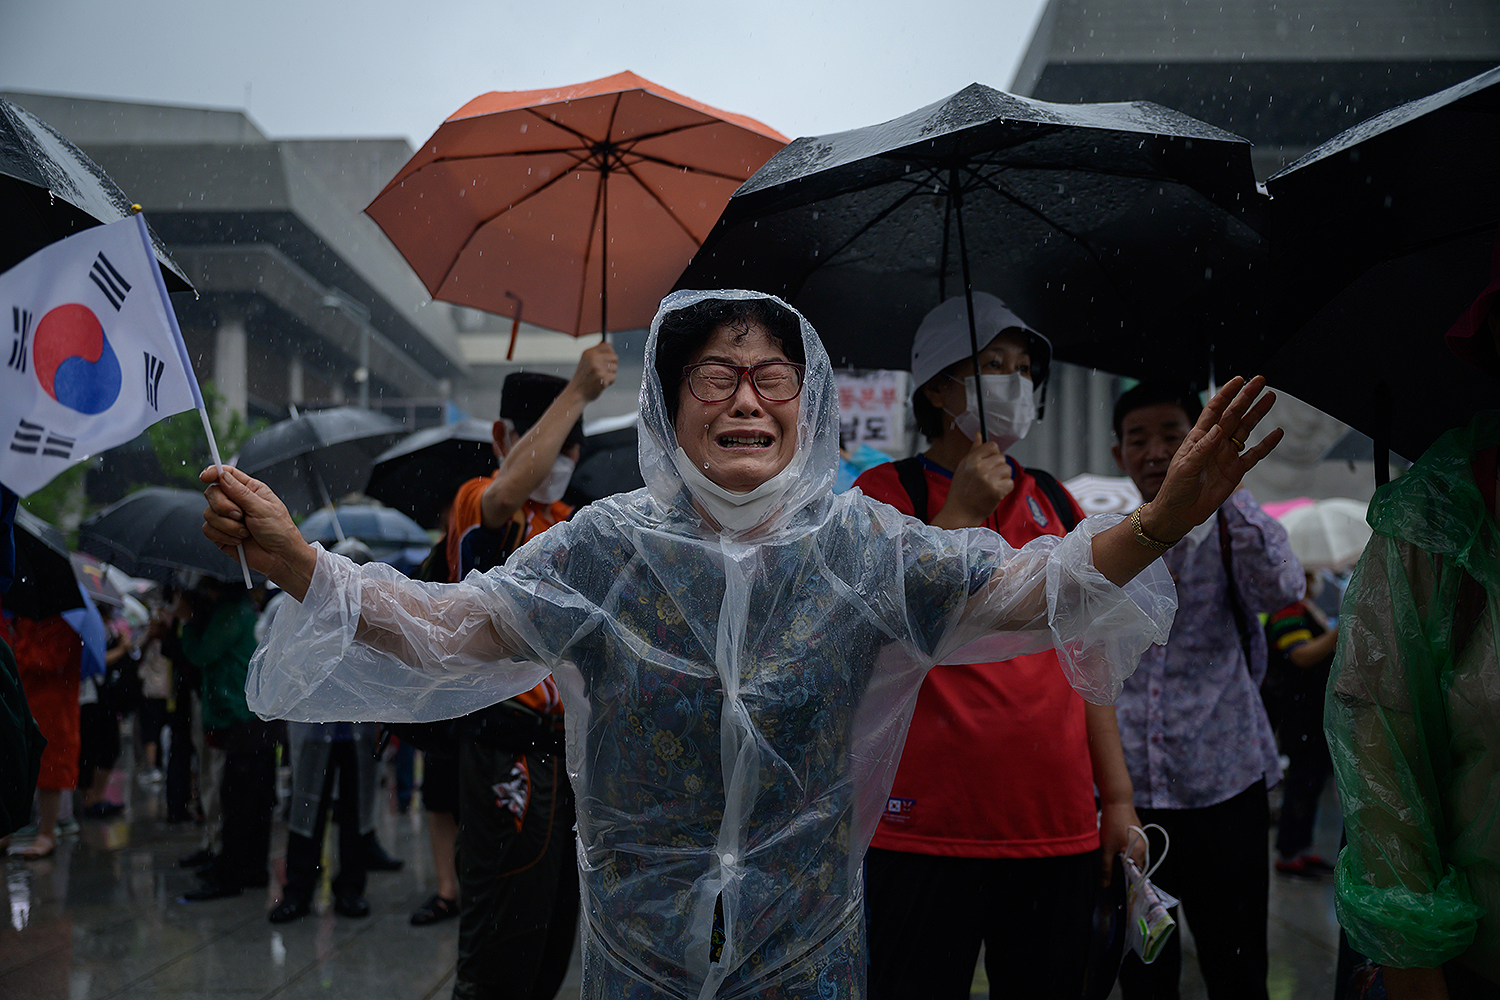 A woman weeps as members of conservative right-wing groups wave flags and shout slogans during an anti-government rally in the central Gwanghwamun area of Seoul on Aug. 15. ED JONES/AFP via Getty Images